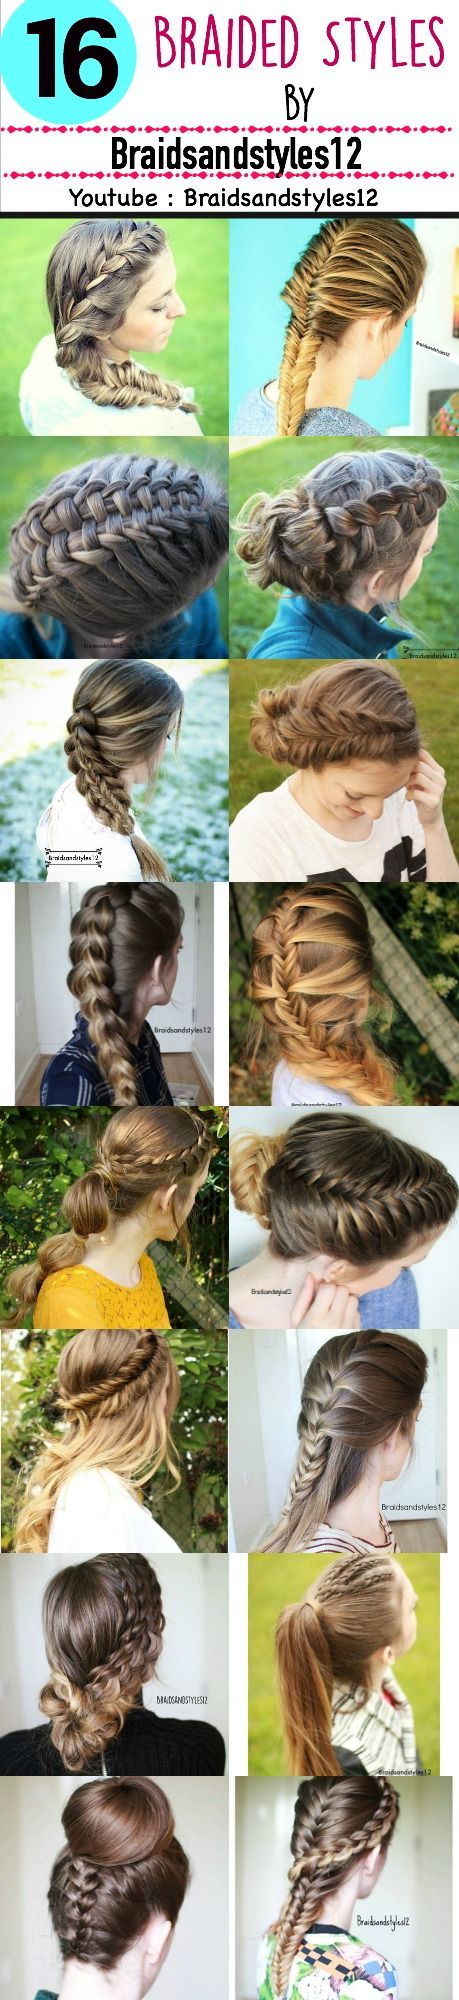 16 DIY Braided Hairstyles by Braidsandstyles12. Youtube : https://www.youtube.com/channel/UC8ouEGIBm1GNFabA_eoFbOQ   Which is your favourite ?